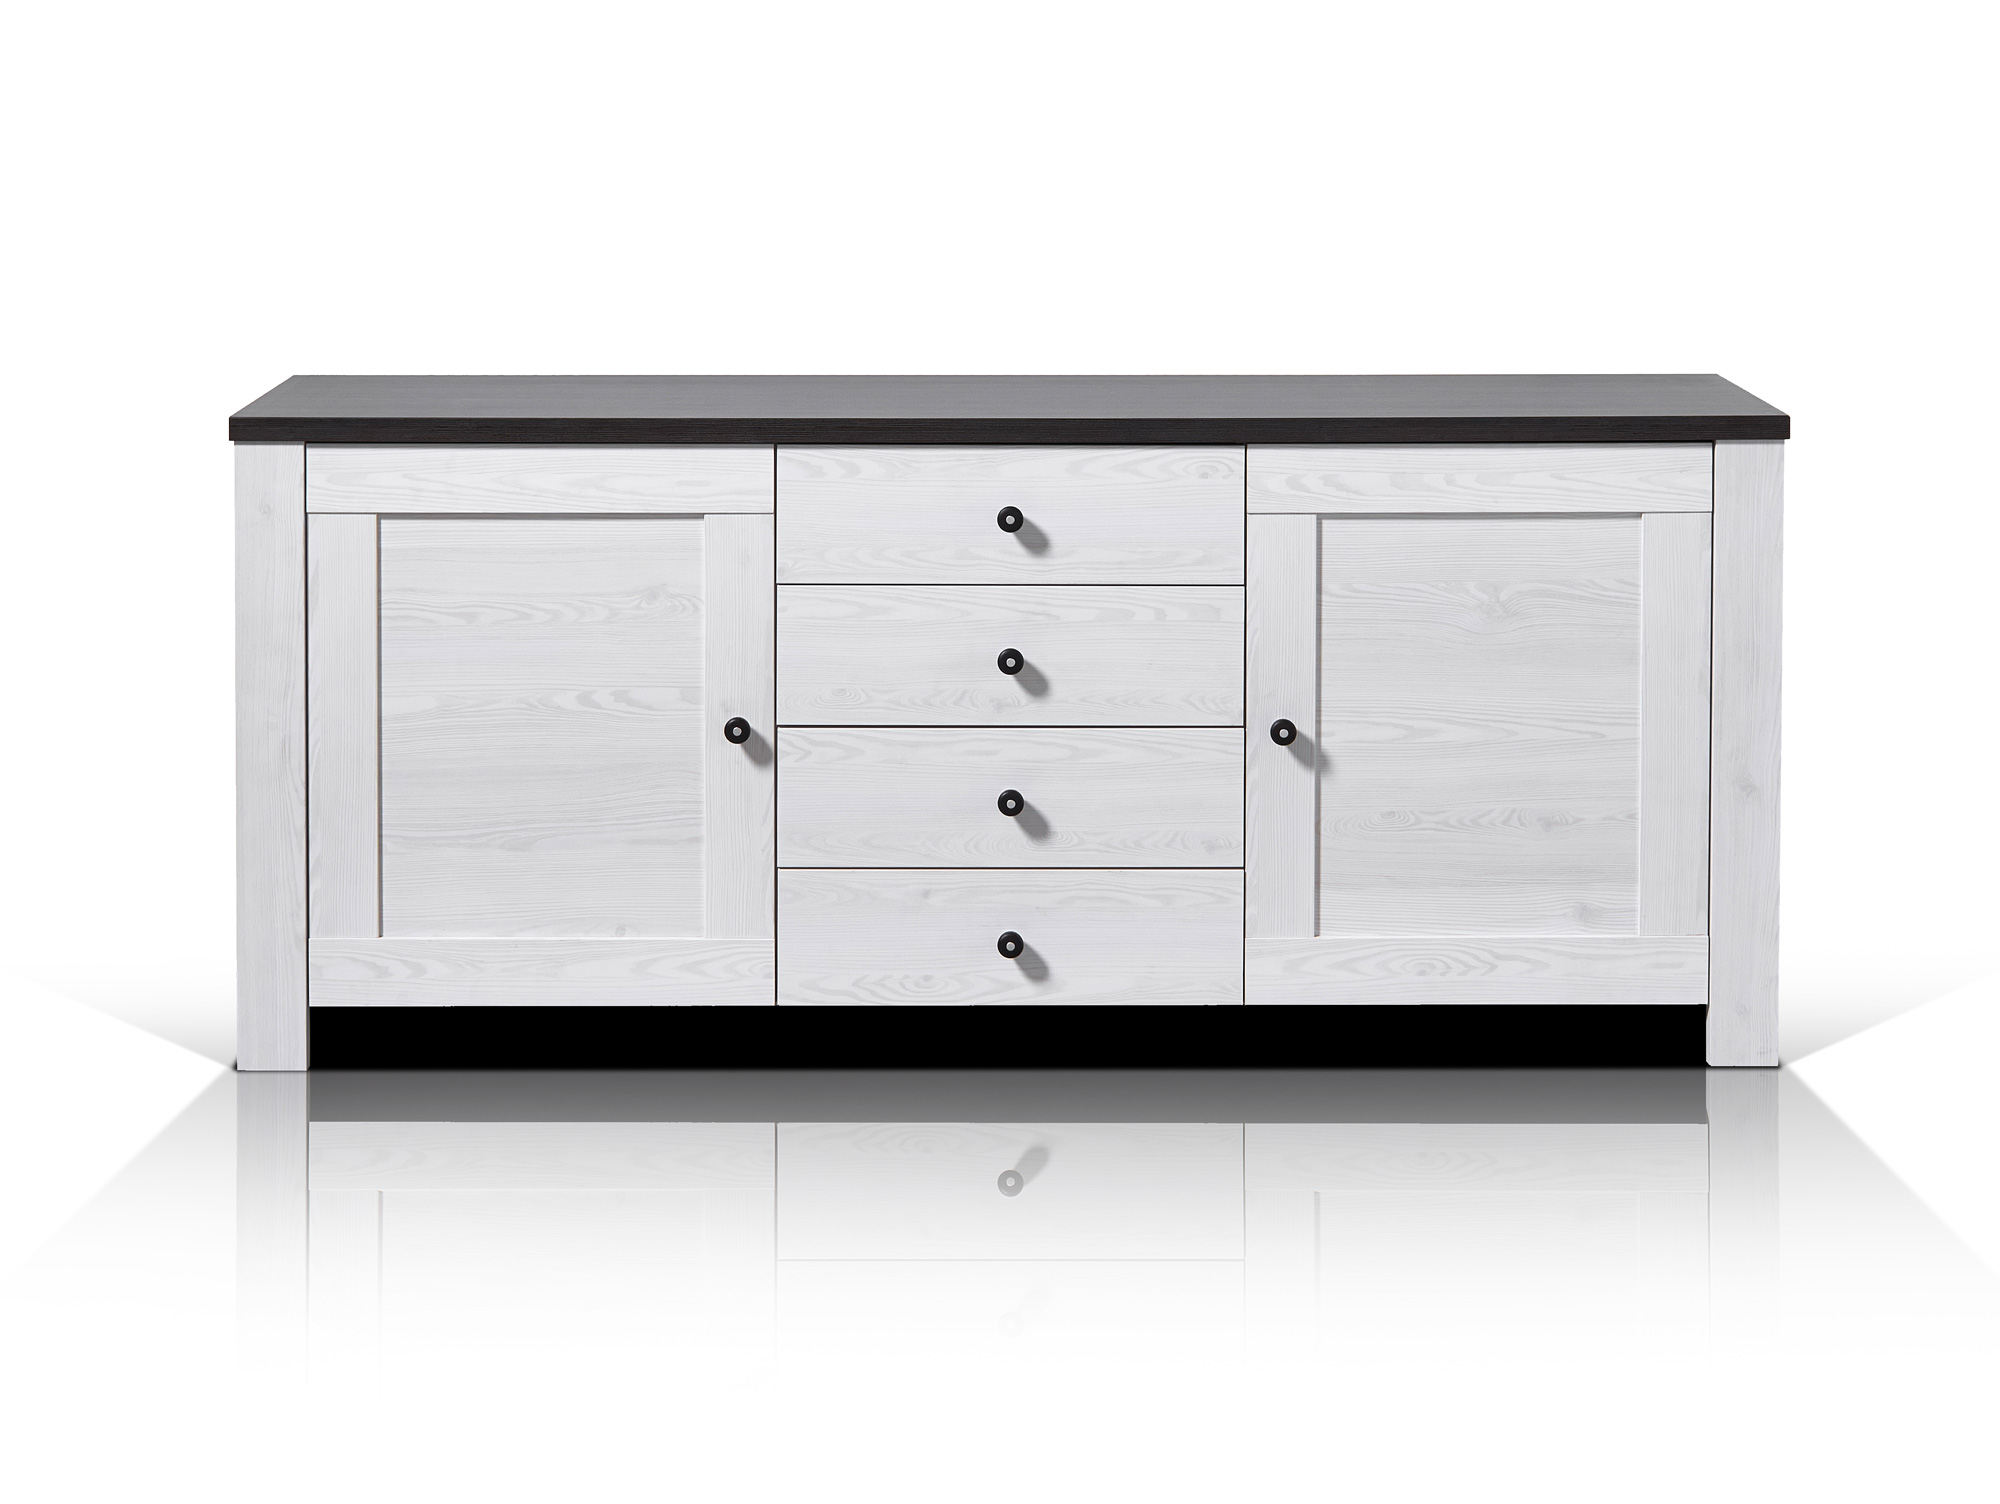 antwerpen sideboard l rche pinie dunkel. Black Bedroom Furniture Sets. Home Design Ideas